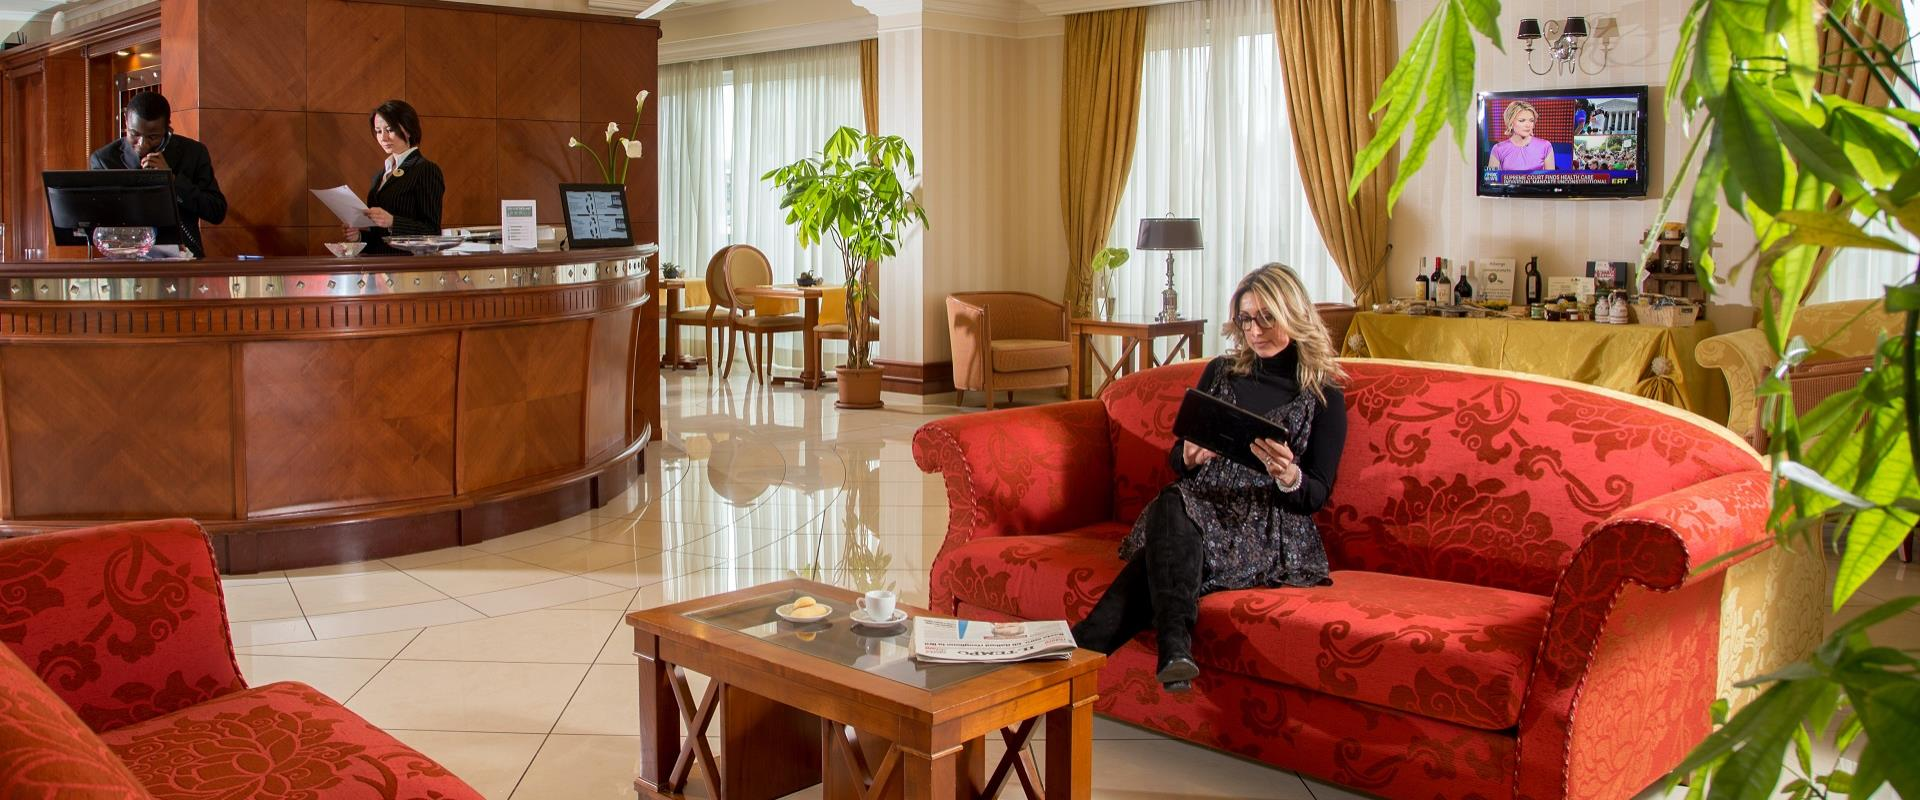 Discover the comforts of our 4-star hotel within walking distance from the centre of Viterbo